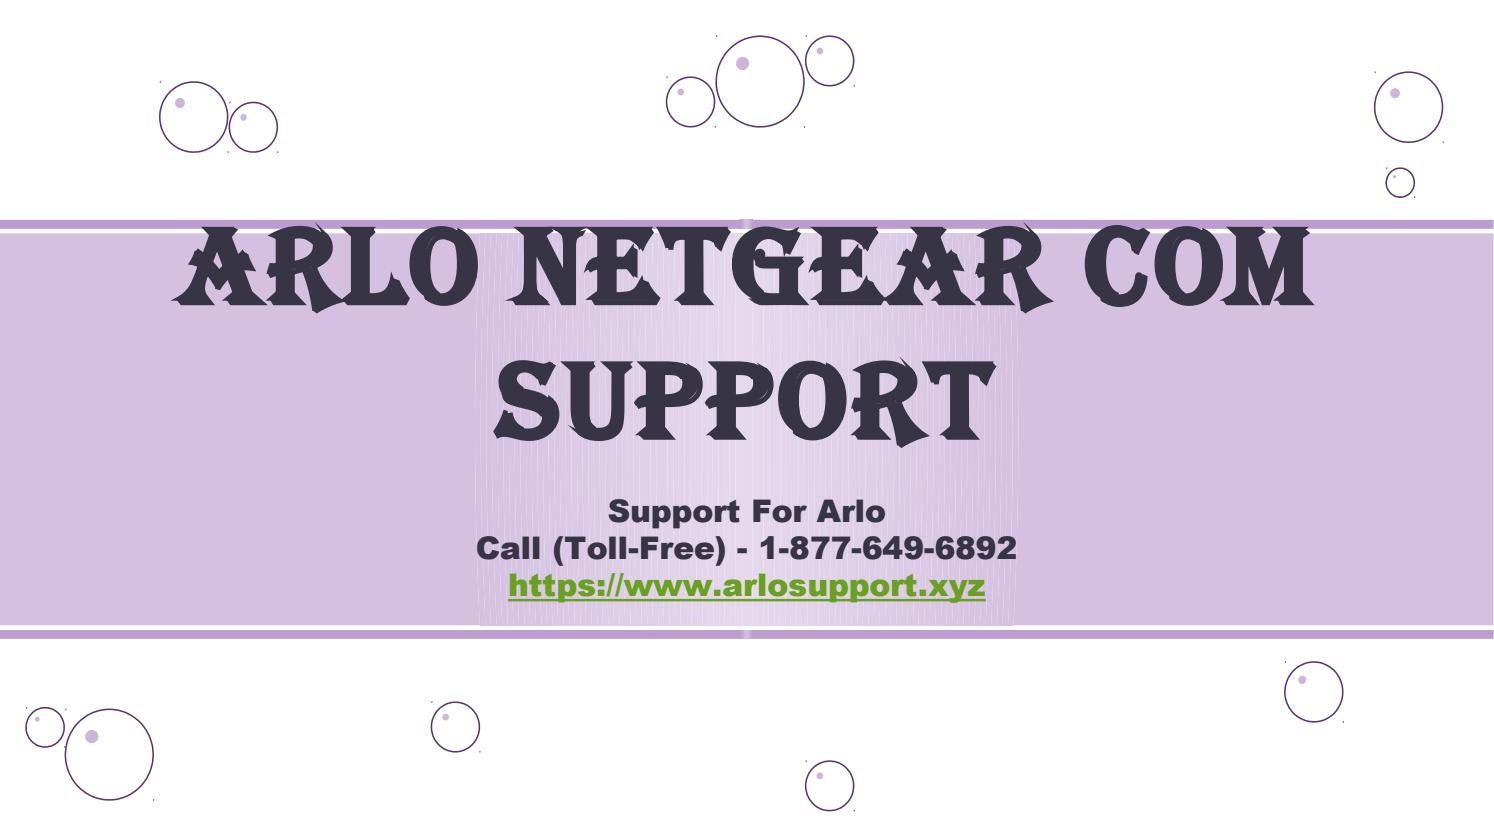 Arlo netgear com support call toll free 1 877 649 6892 by